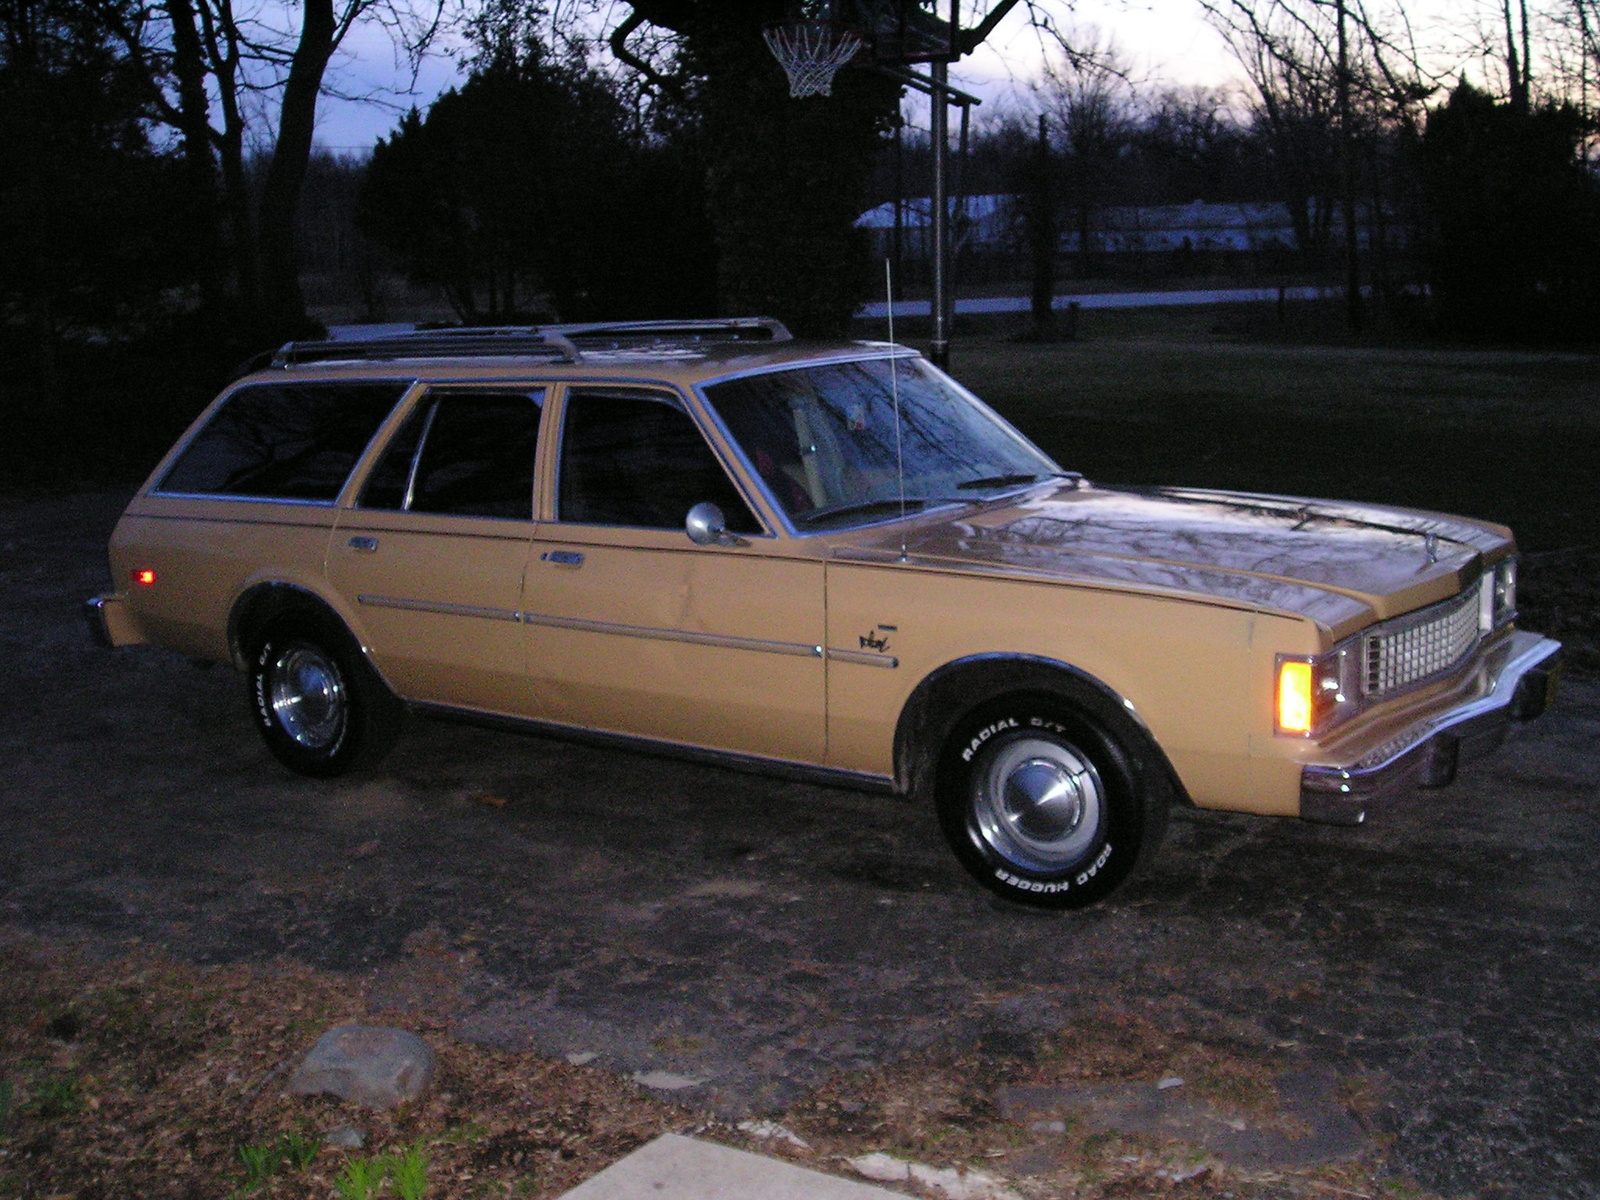 1980 plymouth voyager with 1980 Plymouth Volare Pictures C19014 Pi35650937 on Mercury Topaz also File 2nd Dodge Caravan also Mercury Cougar additionally 1969 Plymouth Road Runner Pictures C9354 pi35831592 moreover Plymouth Ch.